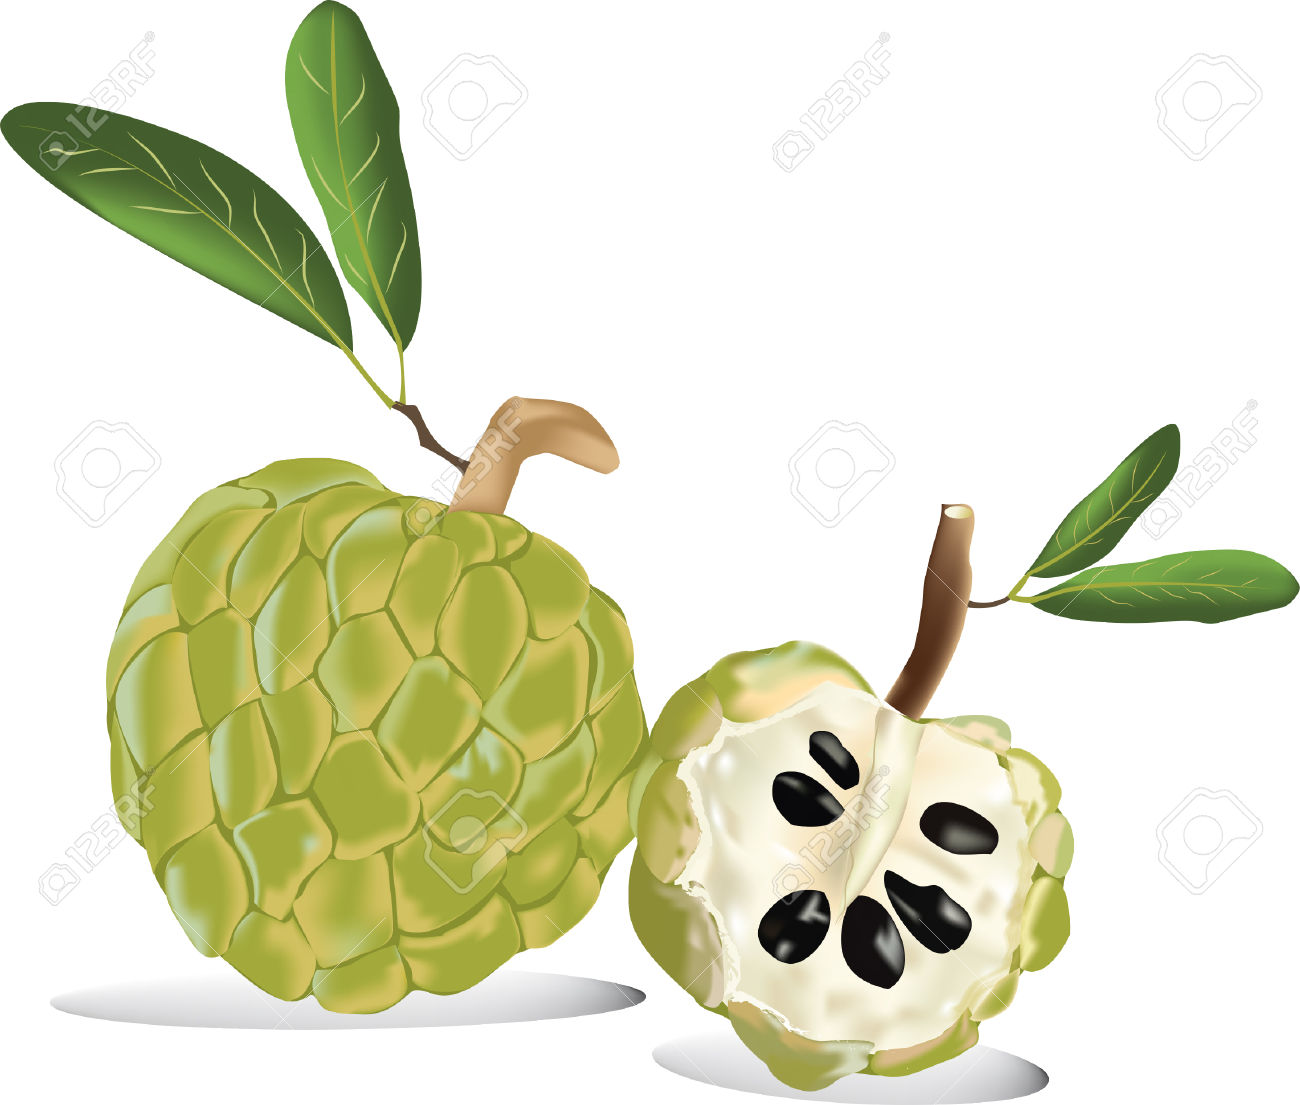 Custard Apple Coloring Pages : Pin sugar apple clipart black and white custard